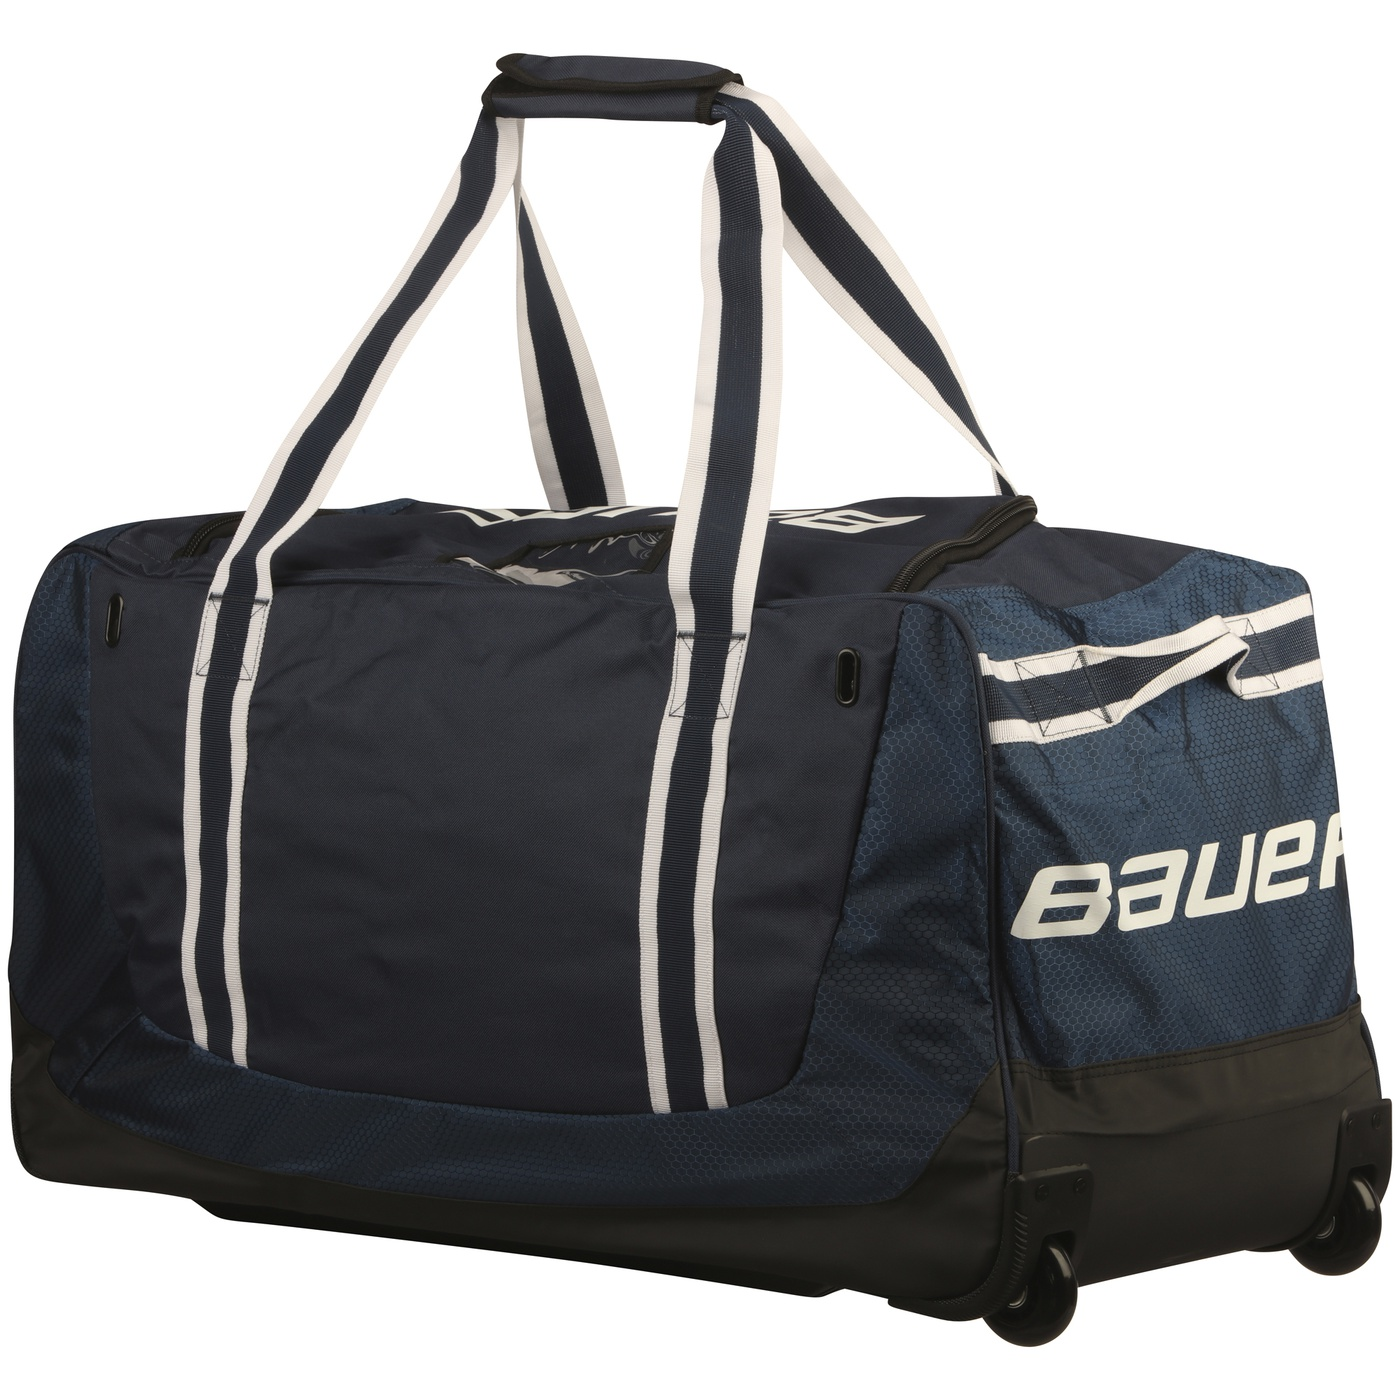 Hokejový vak BAUER 650 Wheel Bag Small